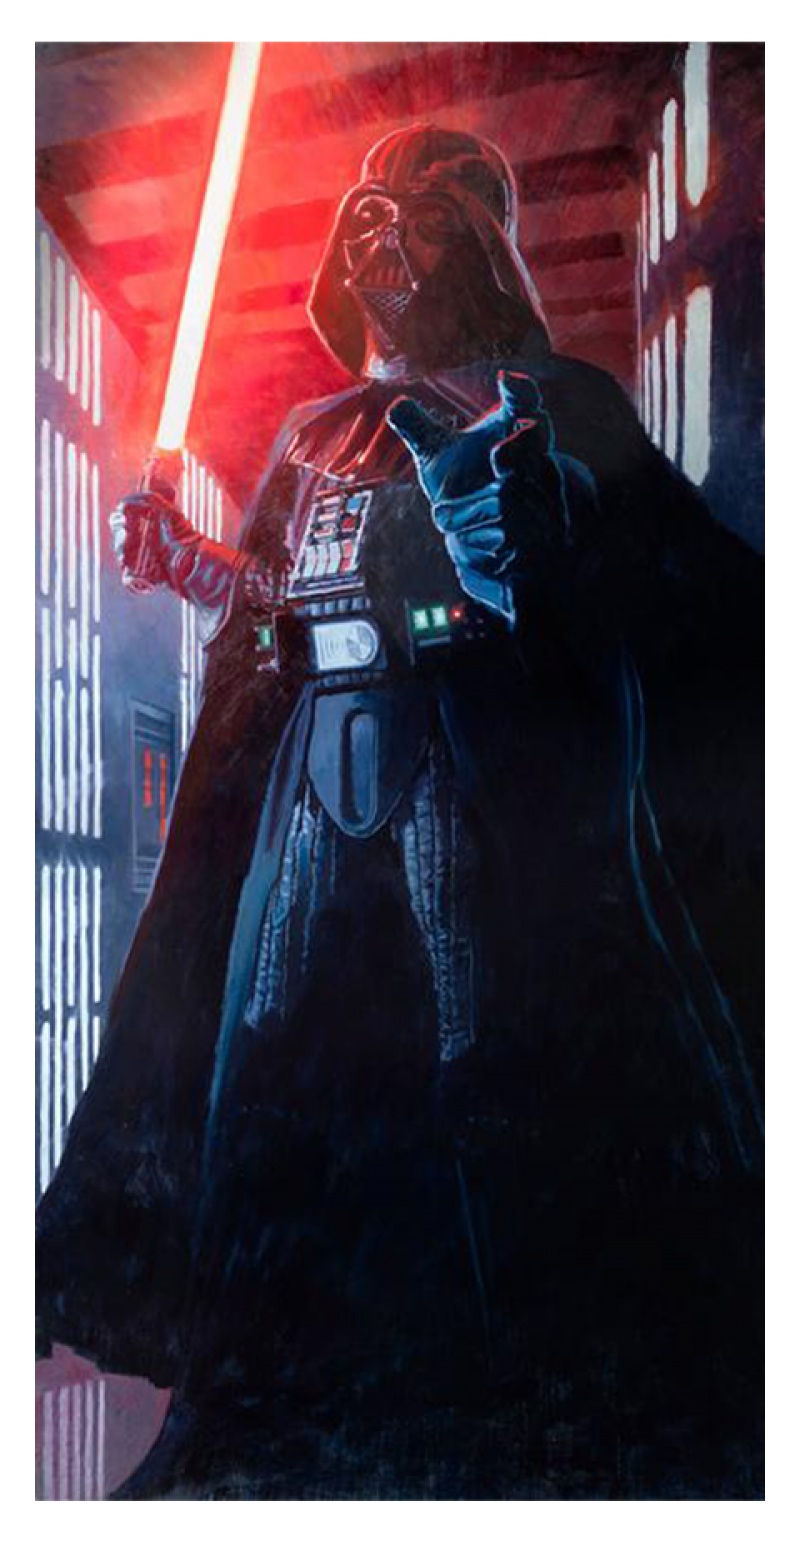 Confronting Vader Art Print - Giclee on Paper